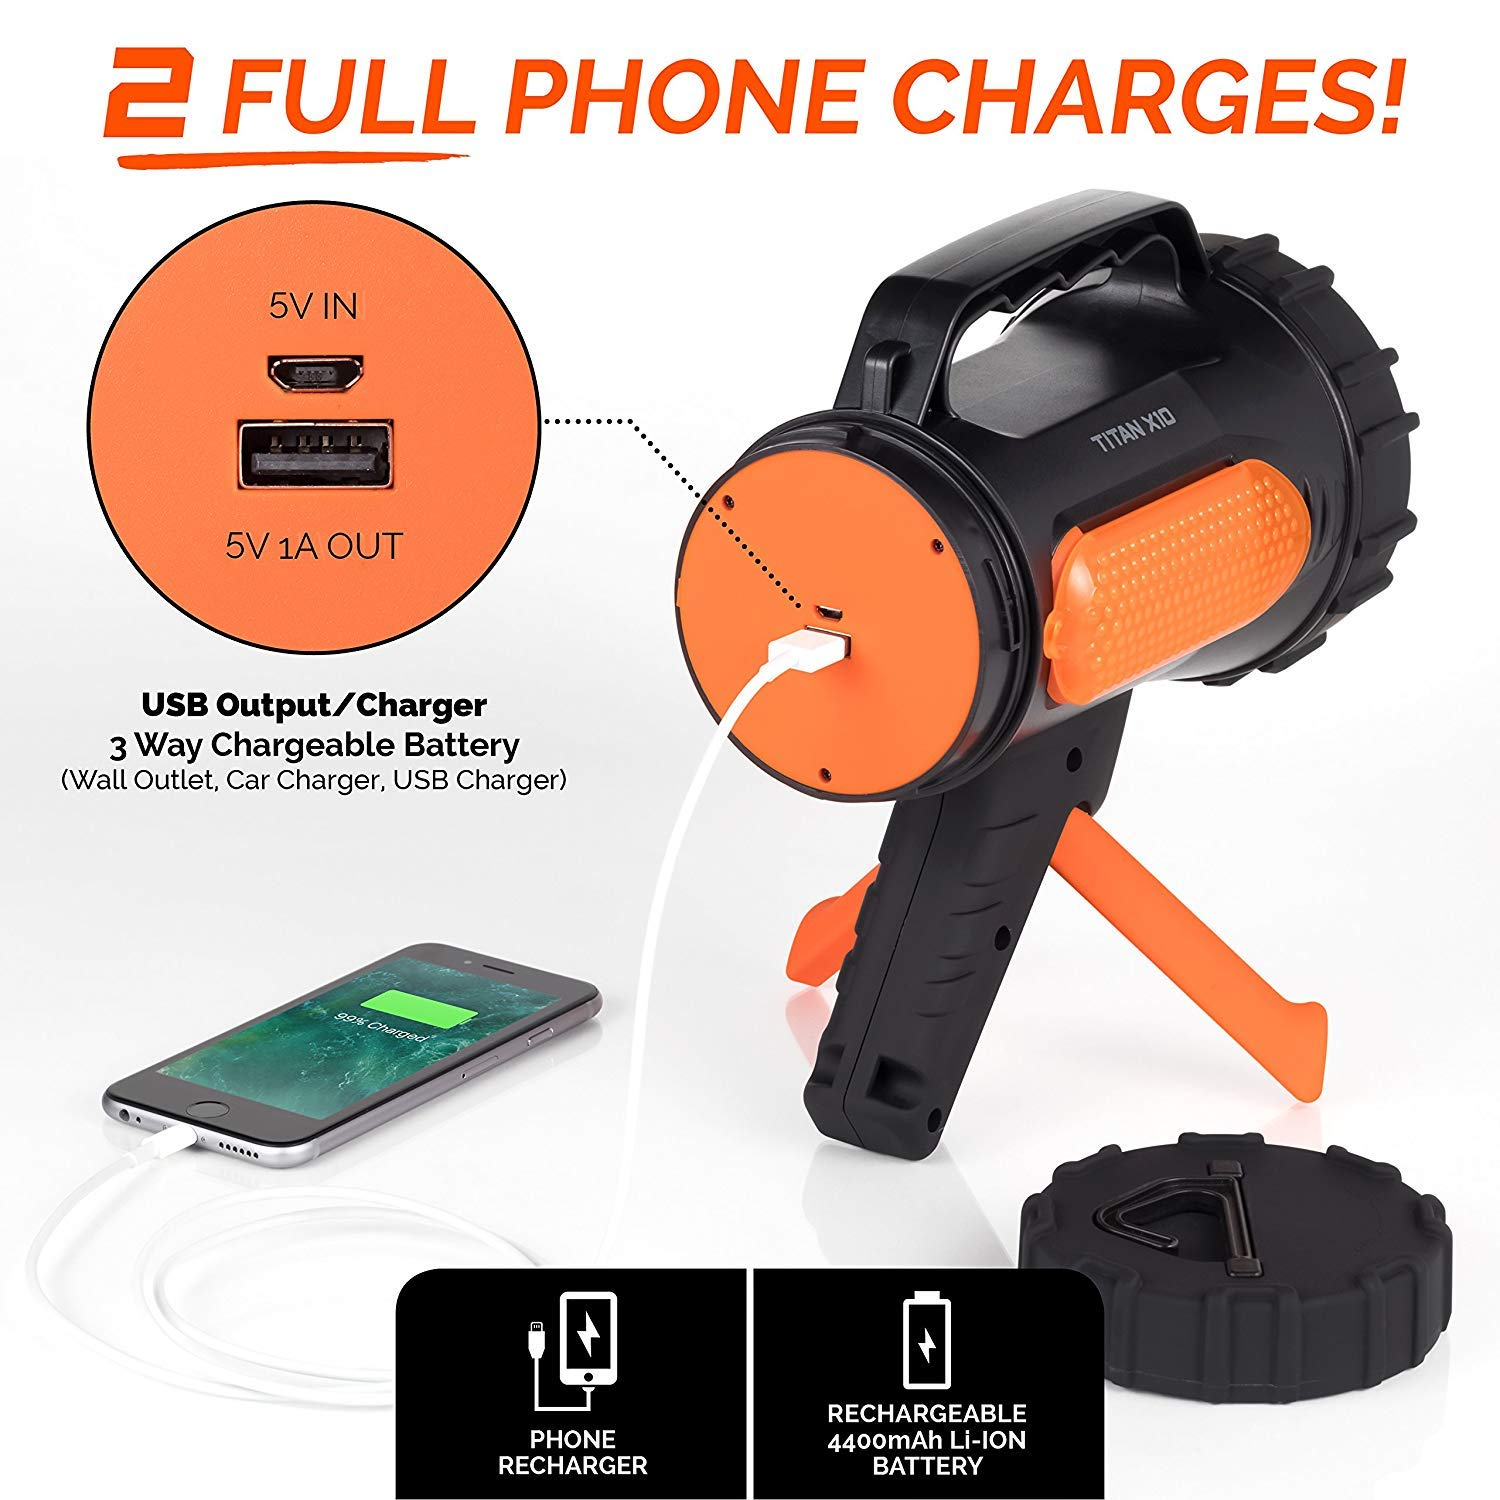 Rugged Camp Titan X10 Rechargeable Spotlight - 1000 Lumens - High Powered 10W LED Bright Flashlight - Work Light & Tripod - Perfect for Camping, Hiking, Hunting, Emergencies & Outdoors (Black/Orange) by Rugged Camp (Image #3)